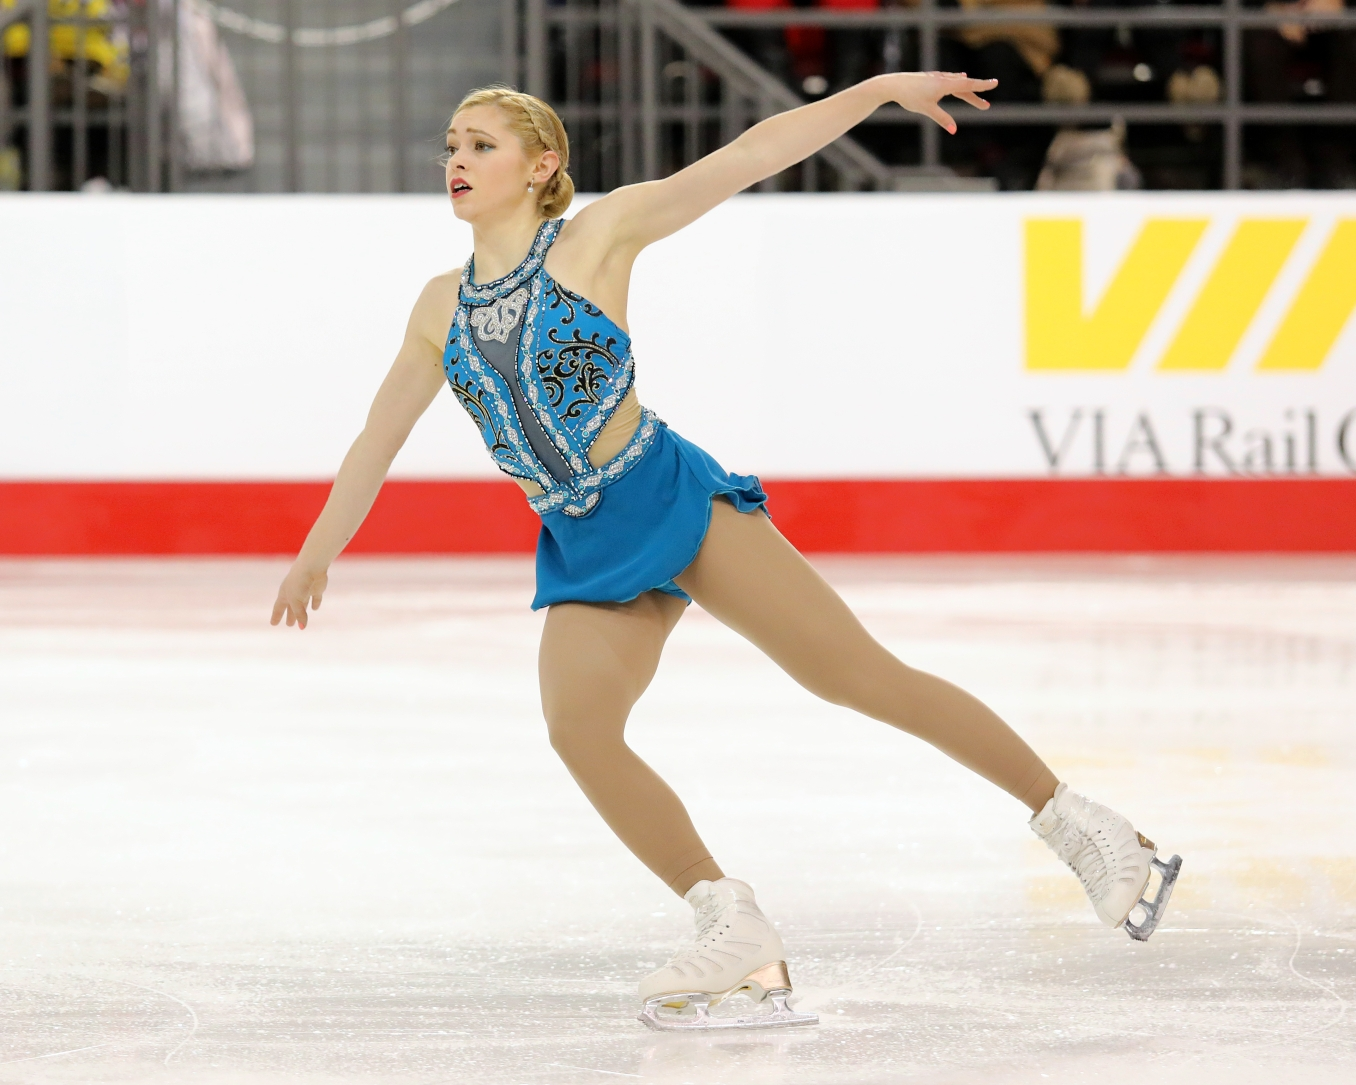 Alaine Chartrand in the free skate at the Canadian Tire National Skating Championships, January, 21, 2017 PHOTO: Greg Kolz